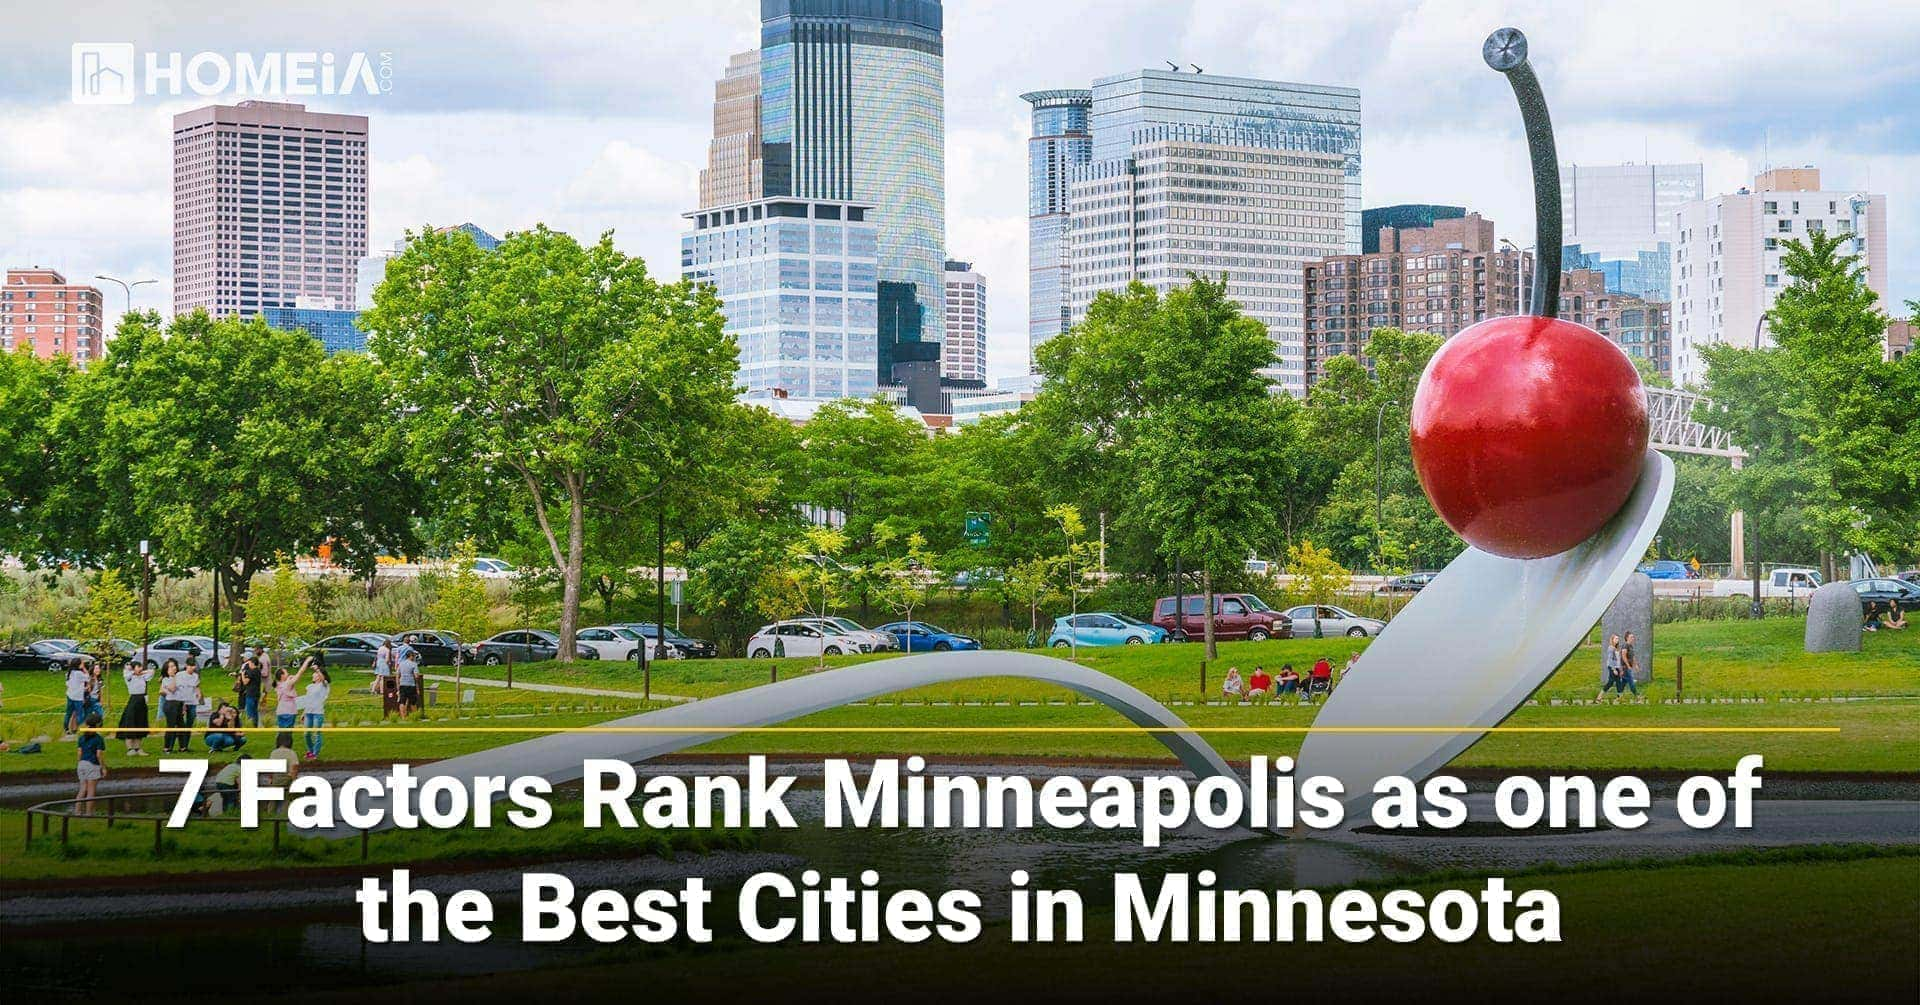 7 Factors Rank Minneapolis as one of the Best Cities in Minnesota